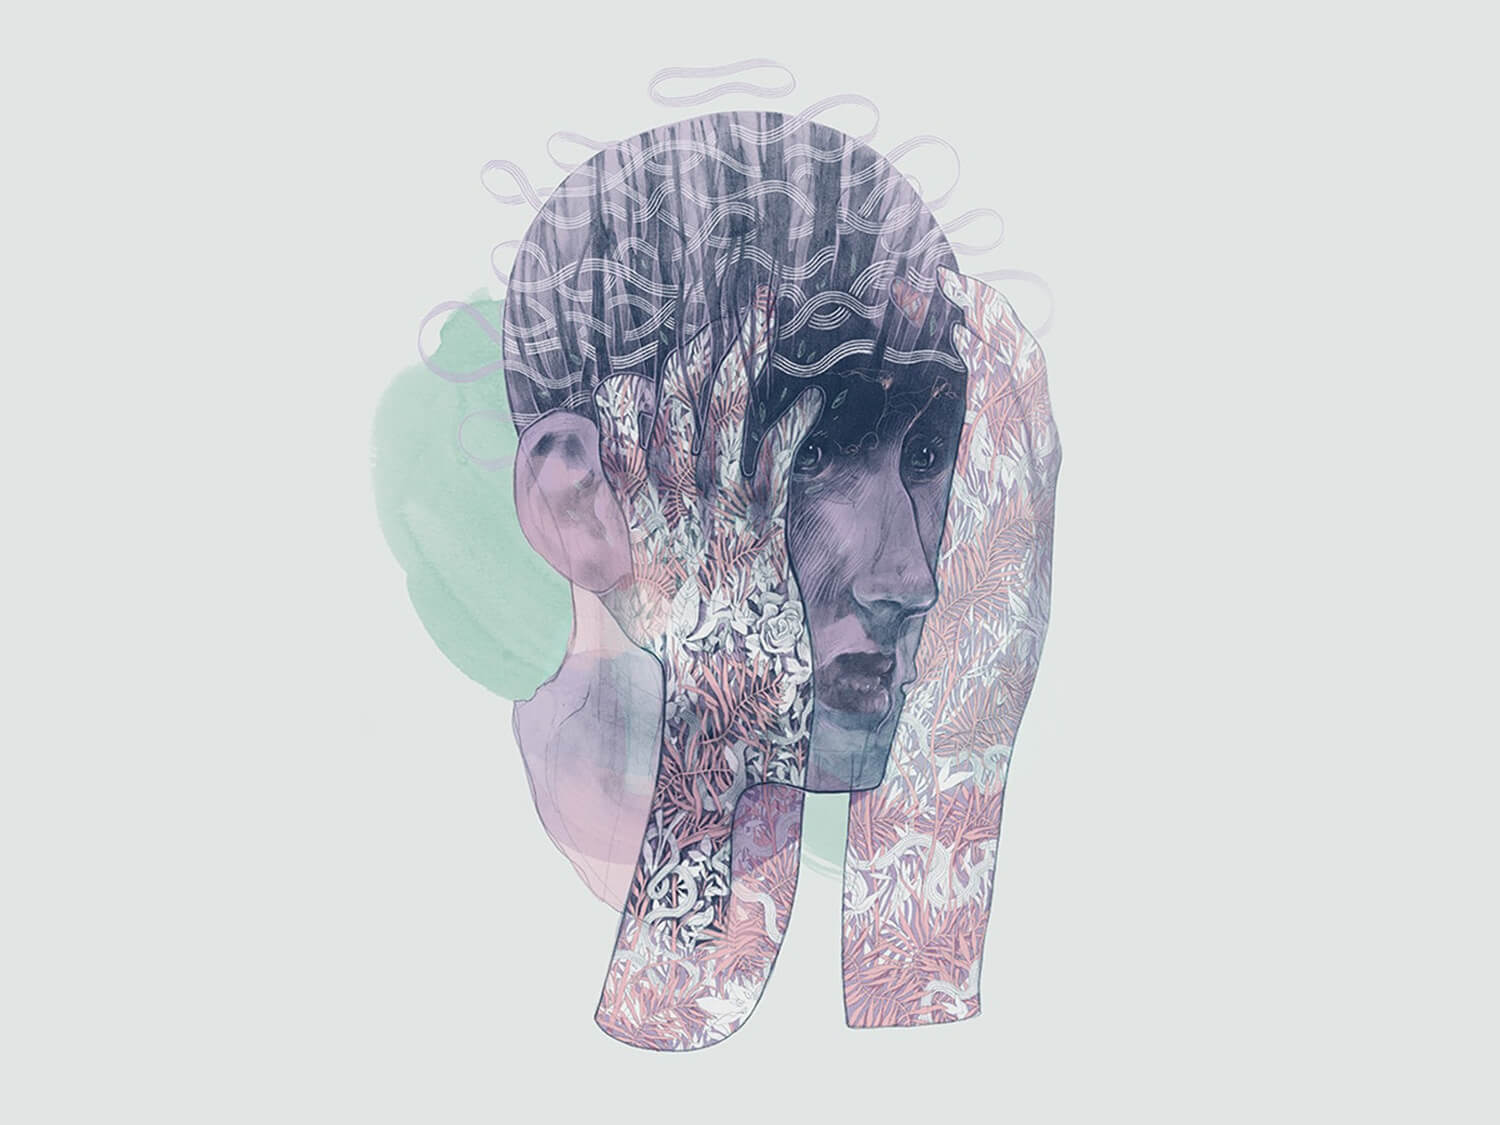 double exposure-style illustration of portrait and landscape